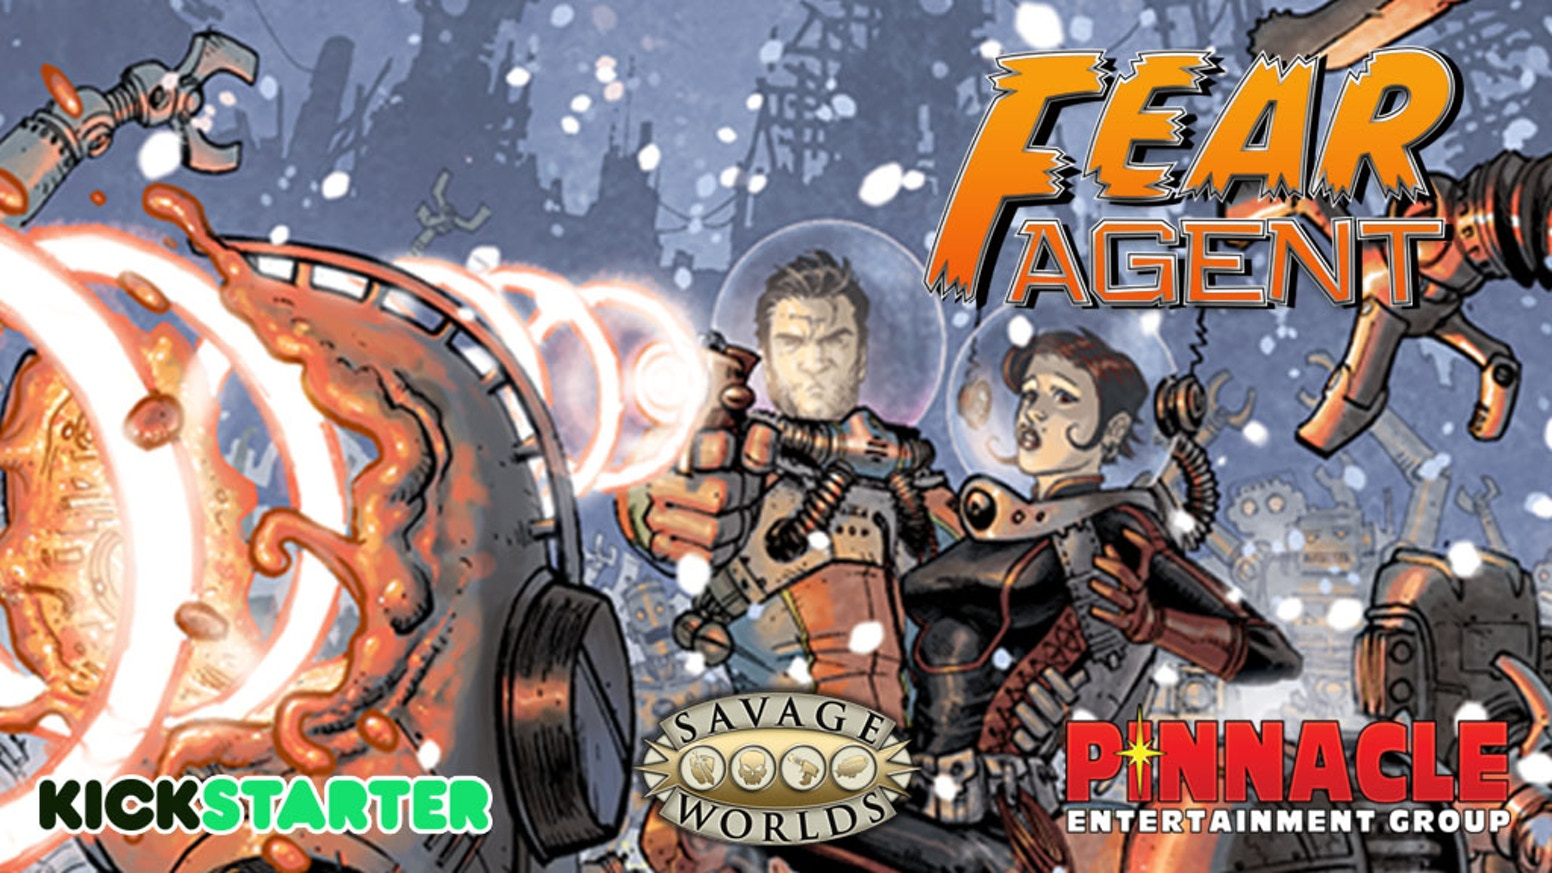 A new RPG setting for Savage Worlds based on the Fear Agent™ graphic novels from Dark Horse Comics™!